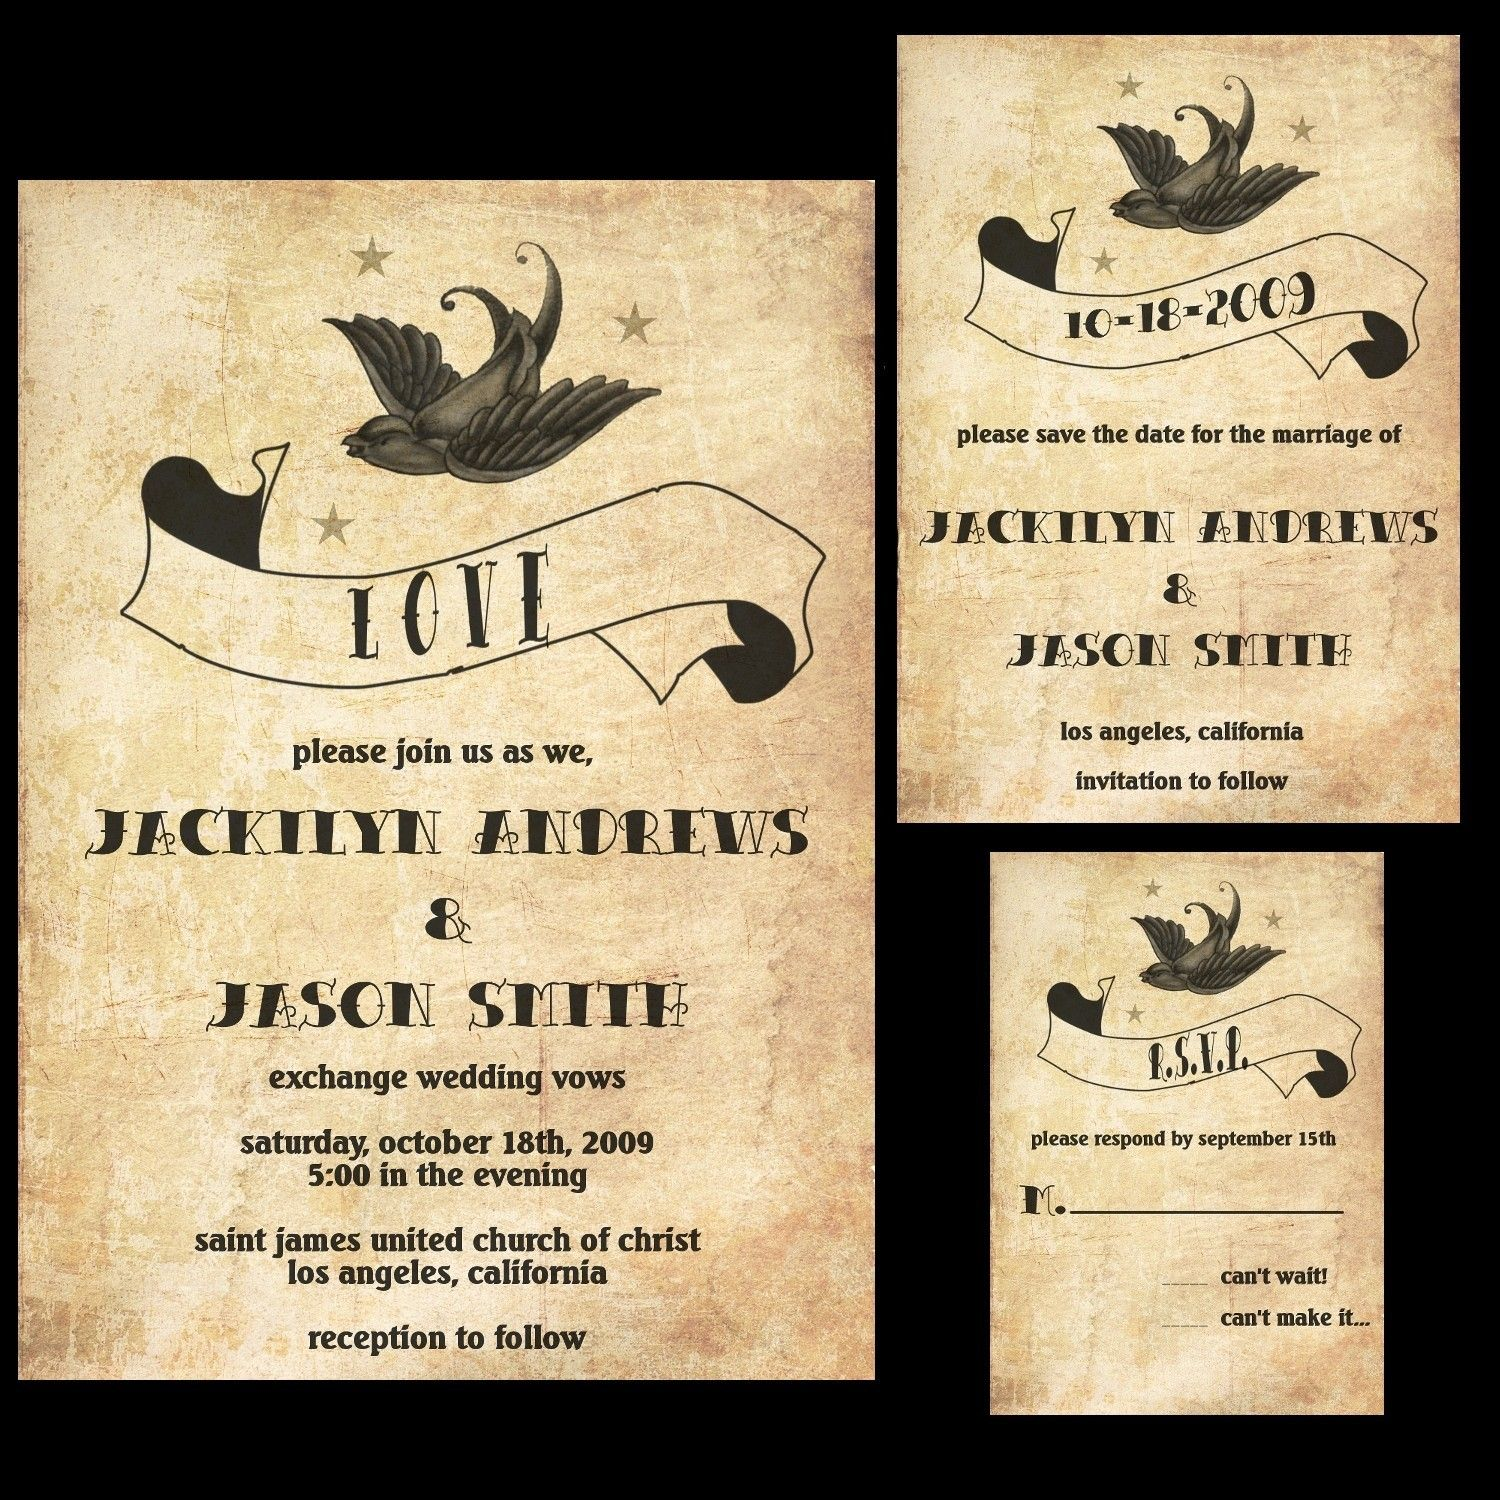 Rockabilly Wedding Invitation Set Featuring a Sparrow, Banner and ...